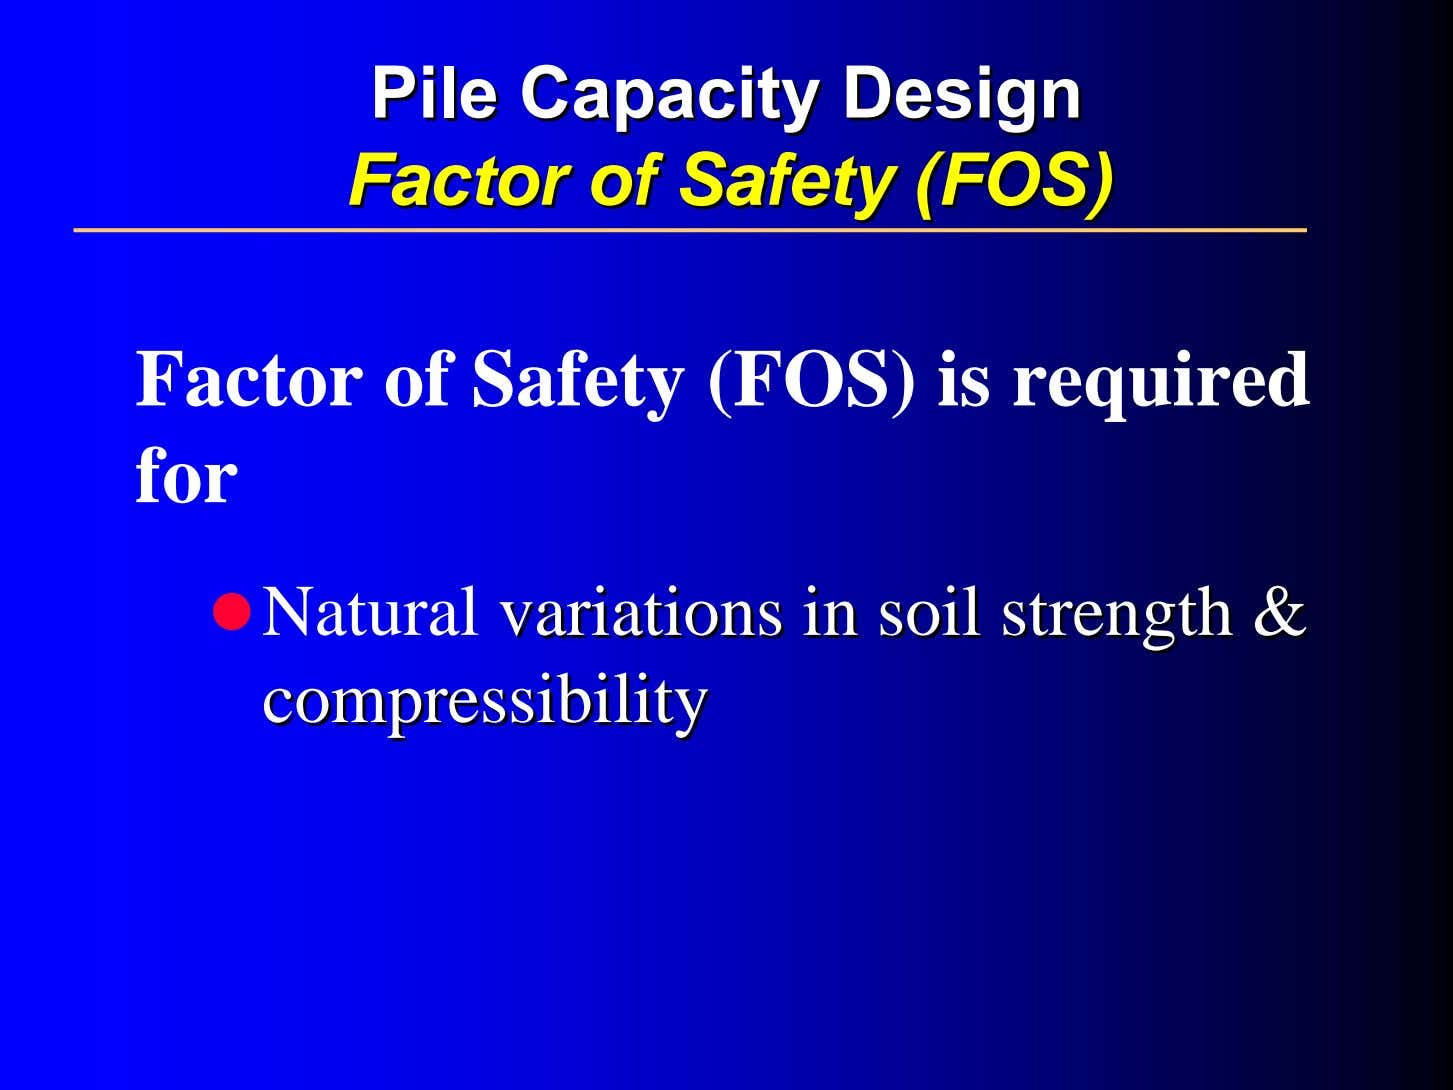 PilePile CapacityCapacity DesignDesign FactorFactor ofof SafetySafety (FOS)(FOS) Factor of Safety (FOS) is required for